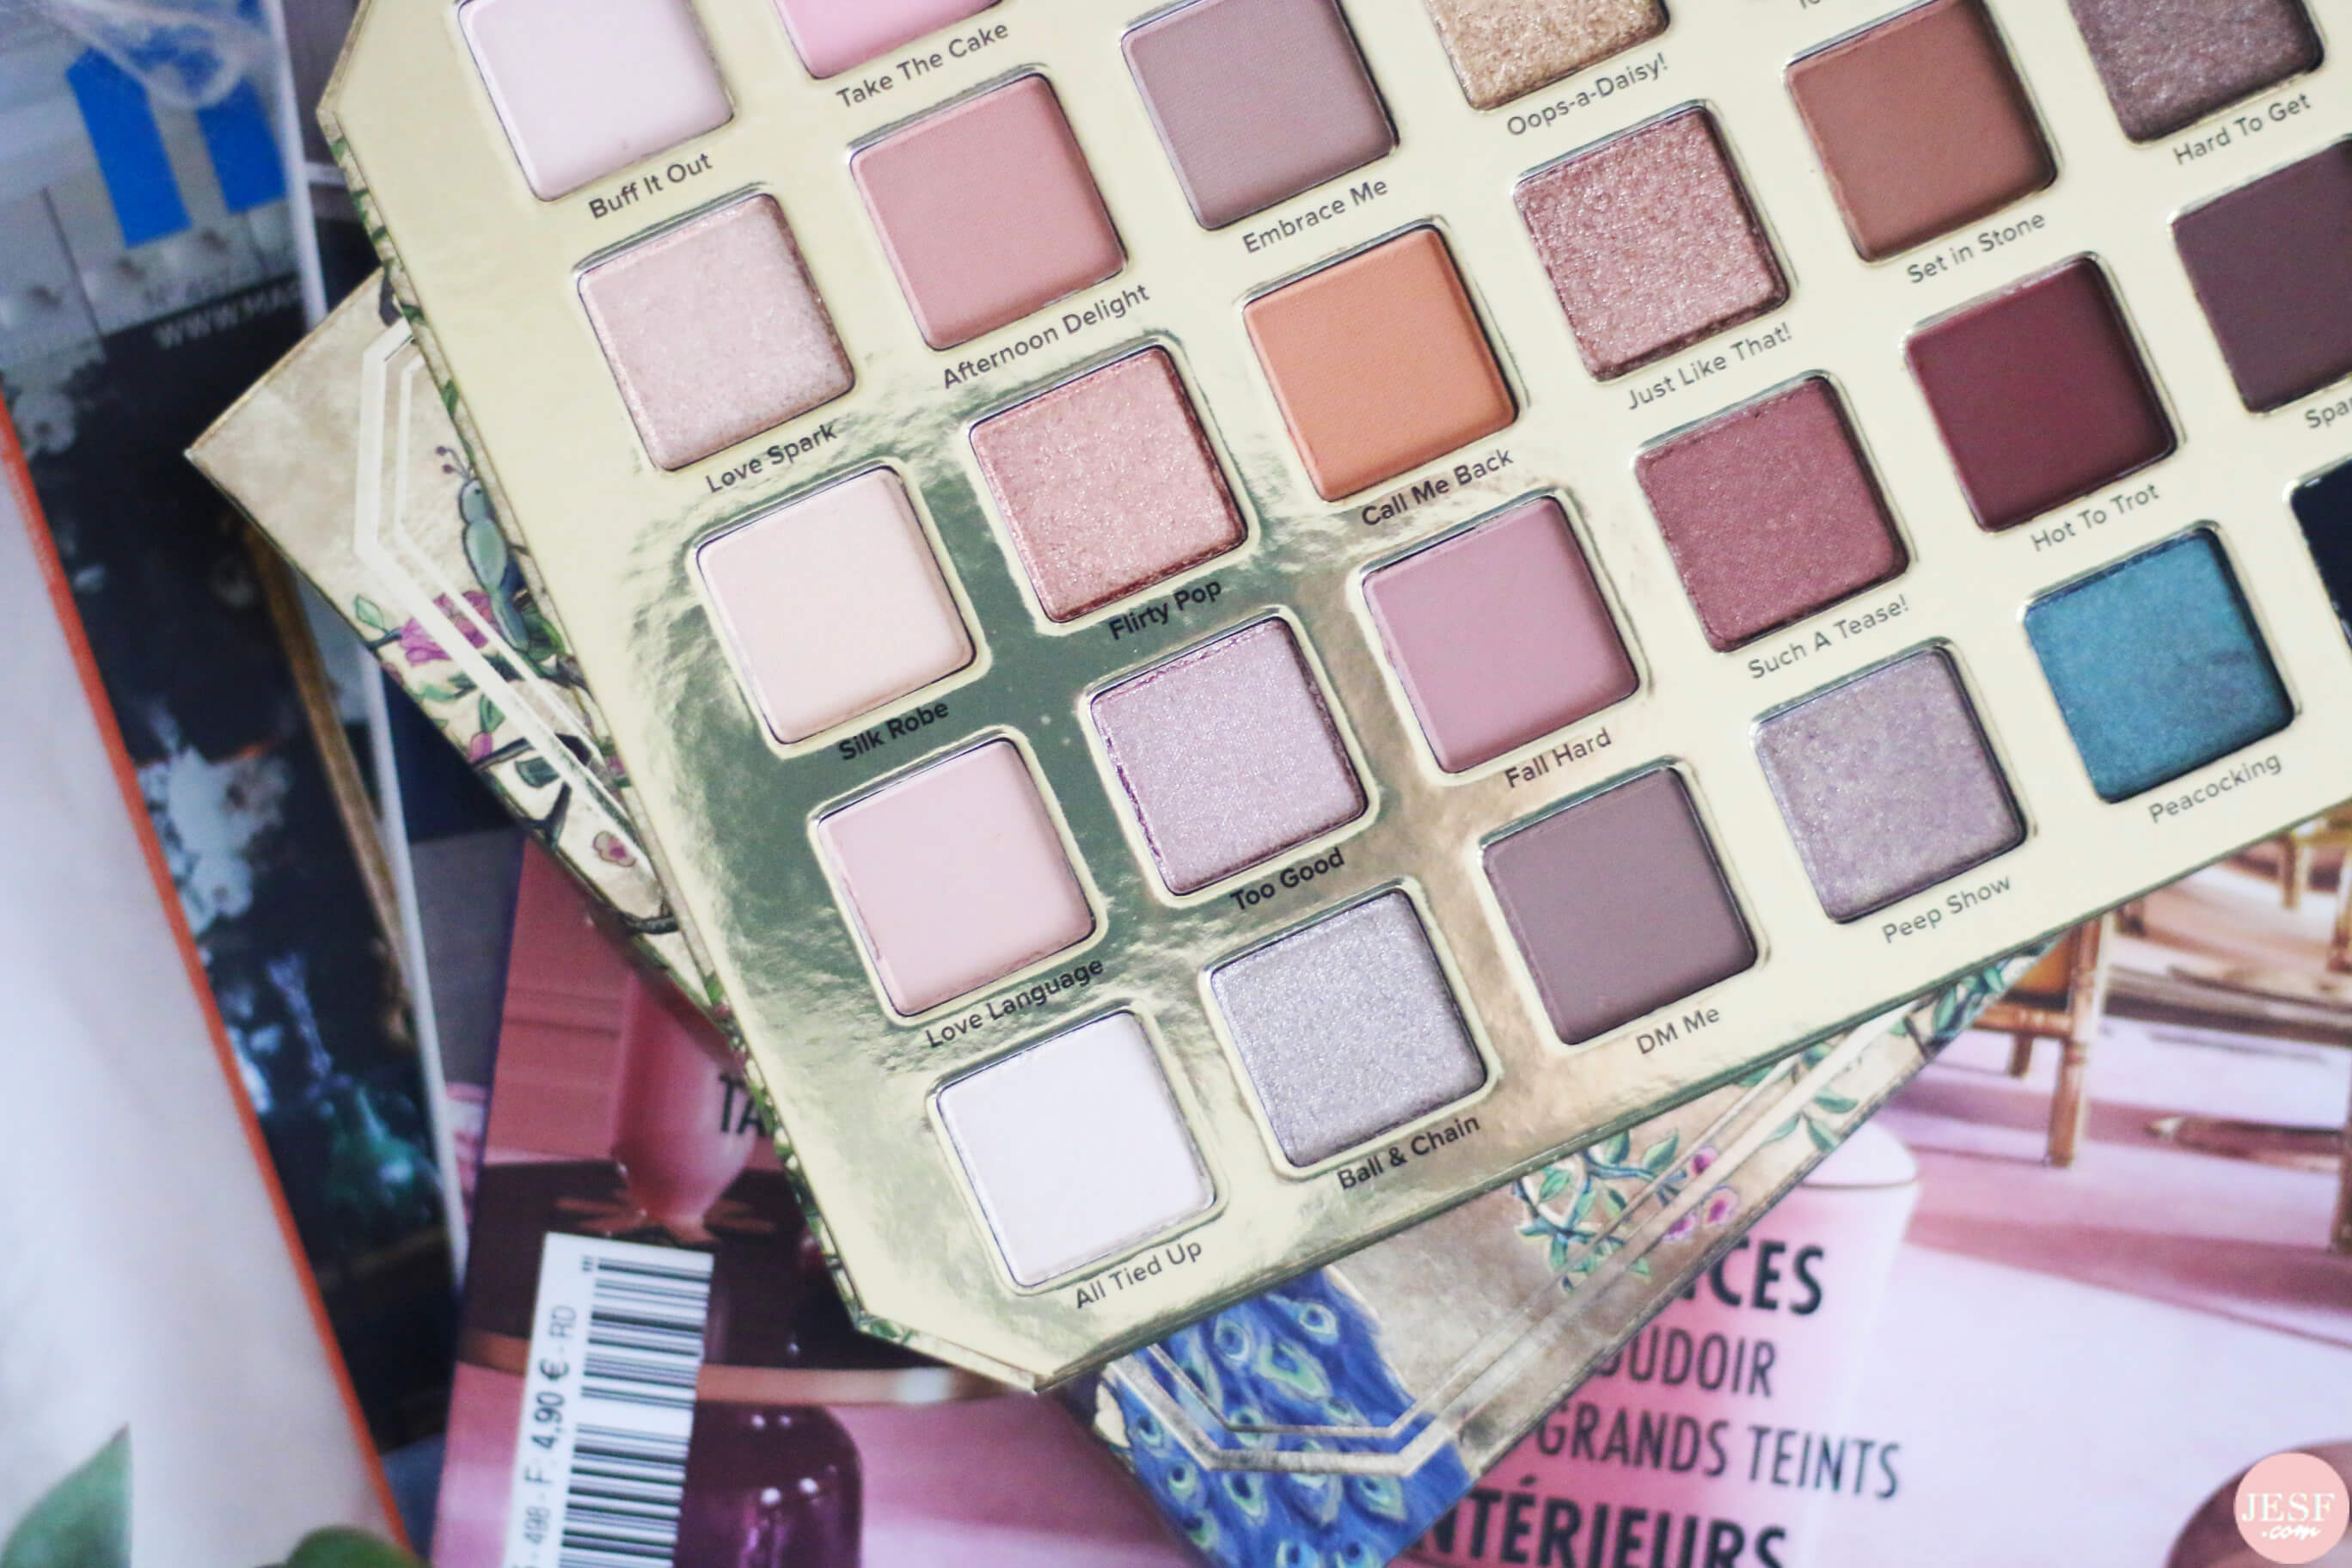 avis-palette-natural-lust-too-faced-nouveauté-printemps-makeup-revue-makeup-swatches